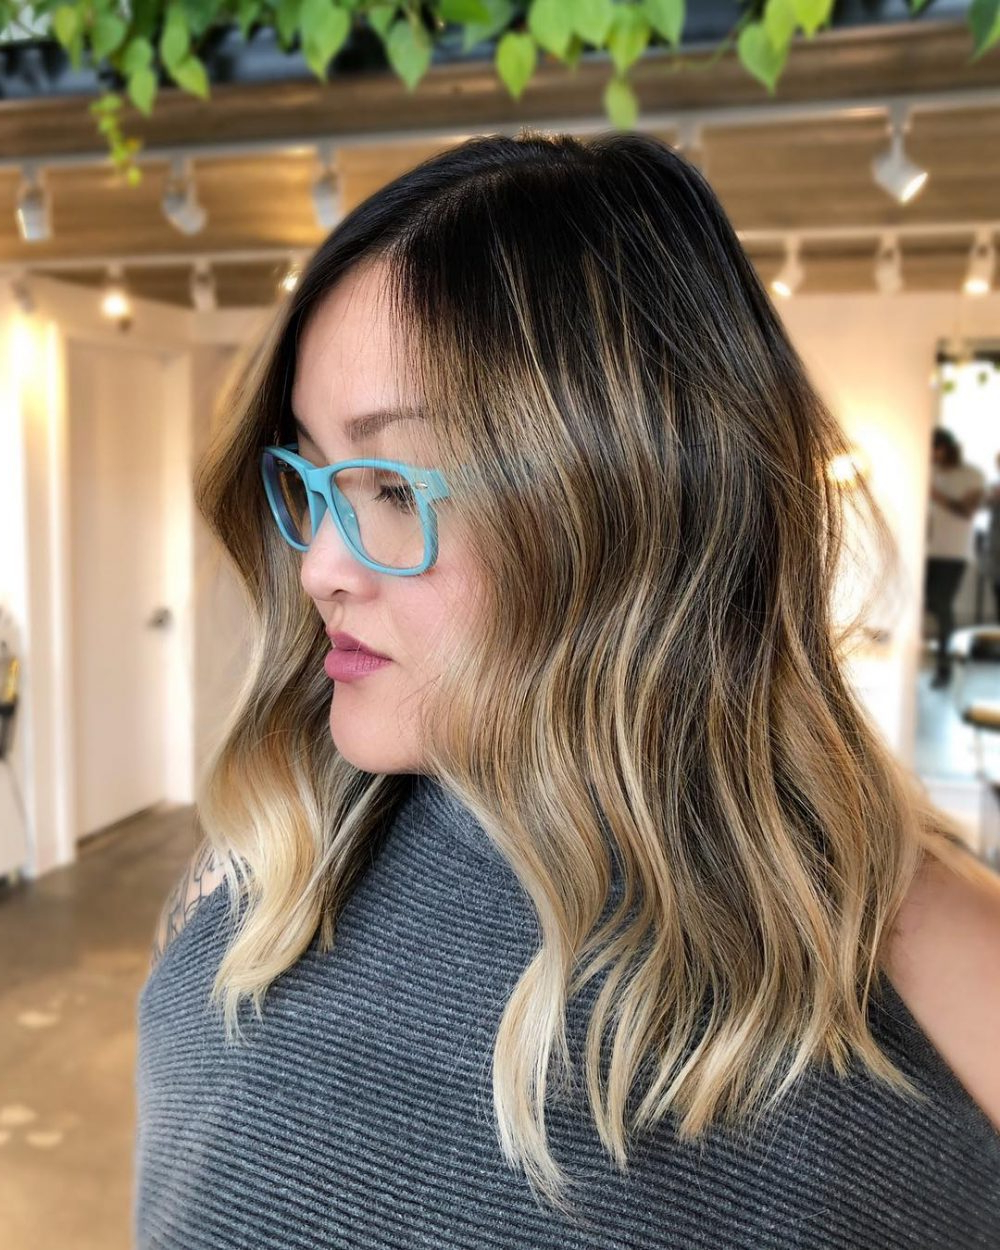 24 Medium Hairstyles For Oval Faces In 2019 Inside Current Medium Hairstyles With Glasses (View 3 of 20)